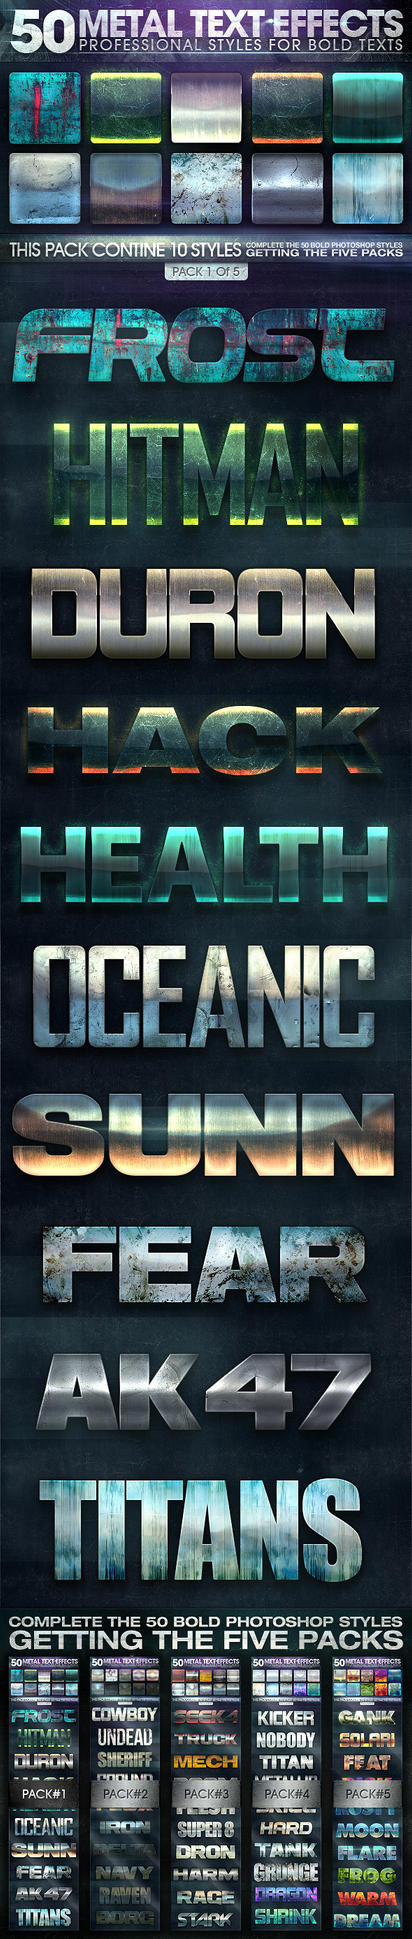 50 Metal Text Effects 1 of 5 by fluctuemos